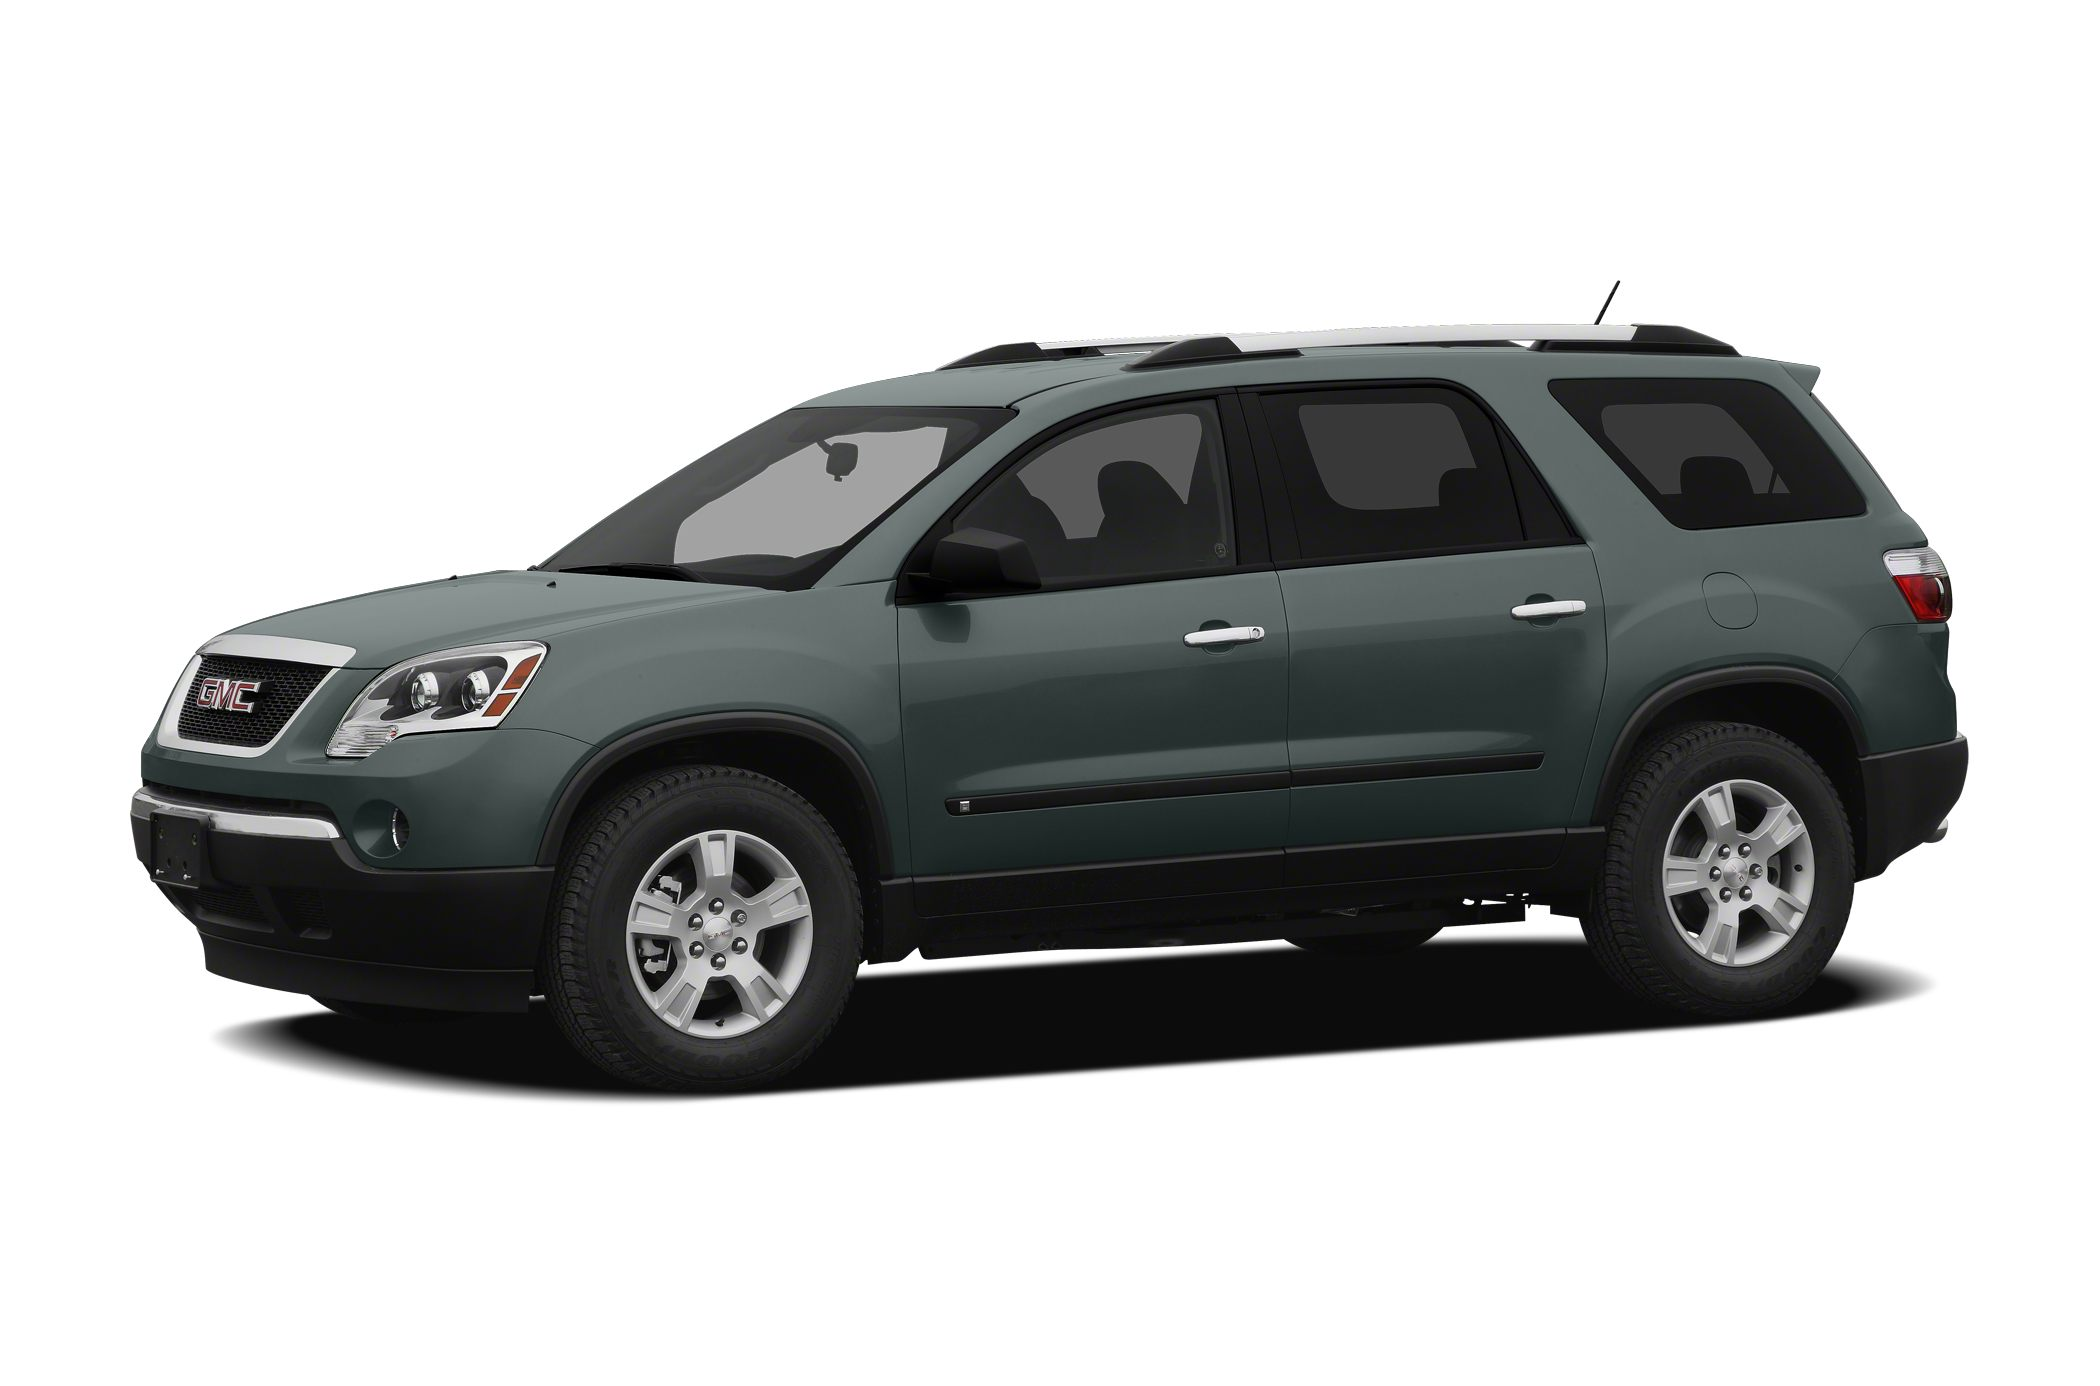 2010 GMC Acadia SLT-1 SUV for sale in Fort Dodge for $20,500 with 63,834 miles